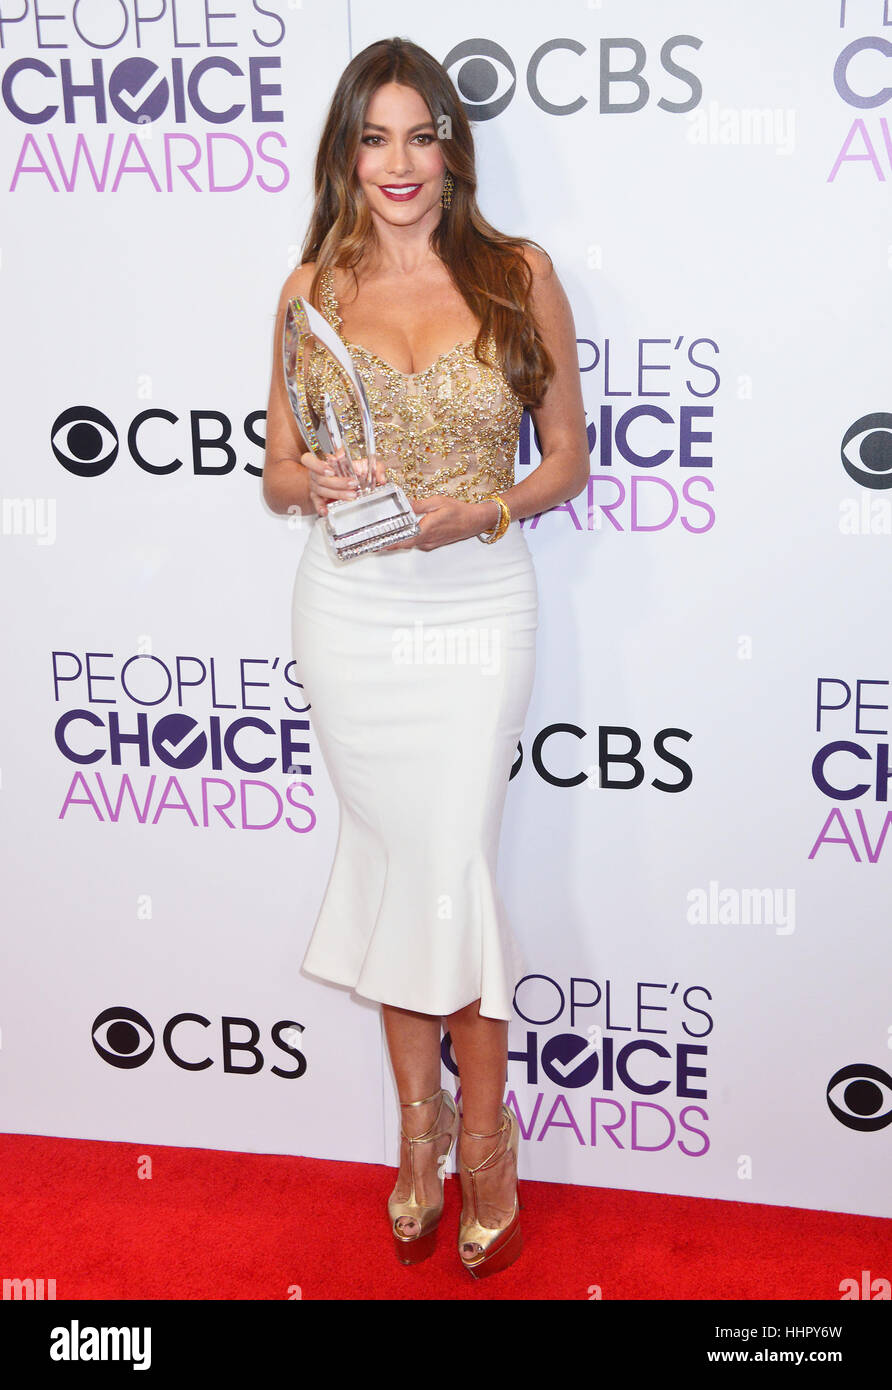 Sofia Vergara 213 arrivant au People's Choice Awards 2017 au Theatre de Los Angeles. 18 janvier, 2017. Banque D'Images